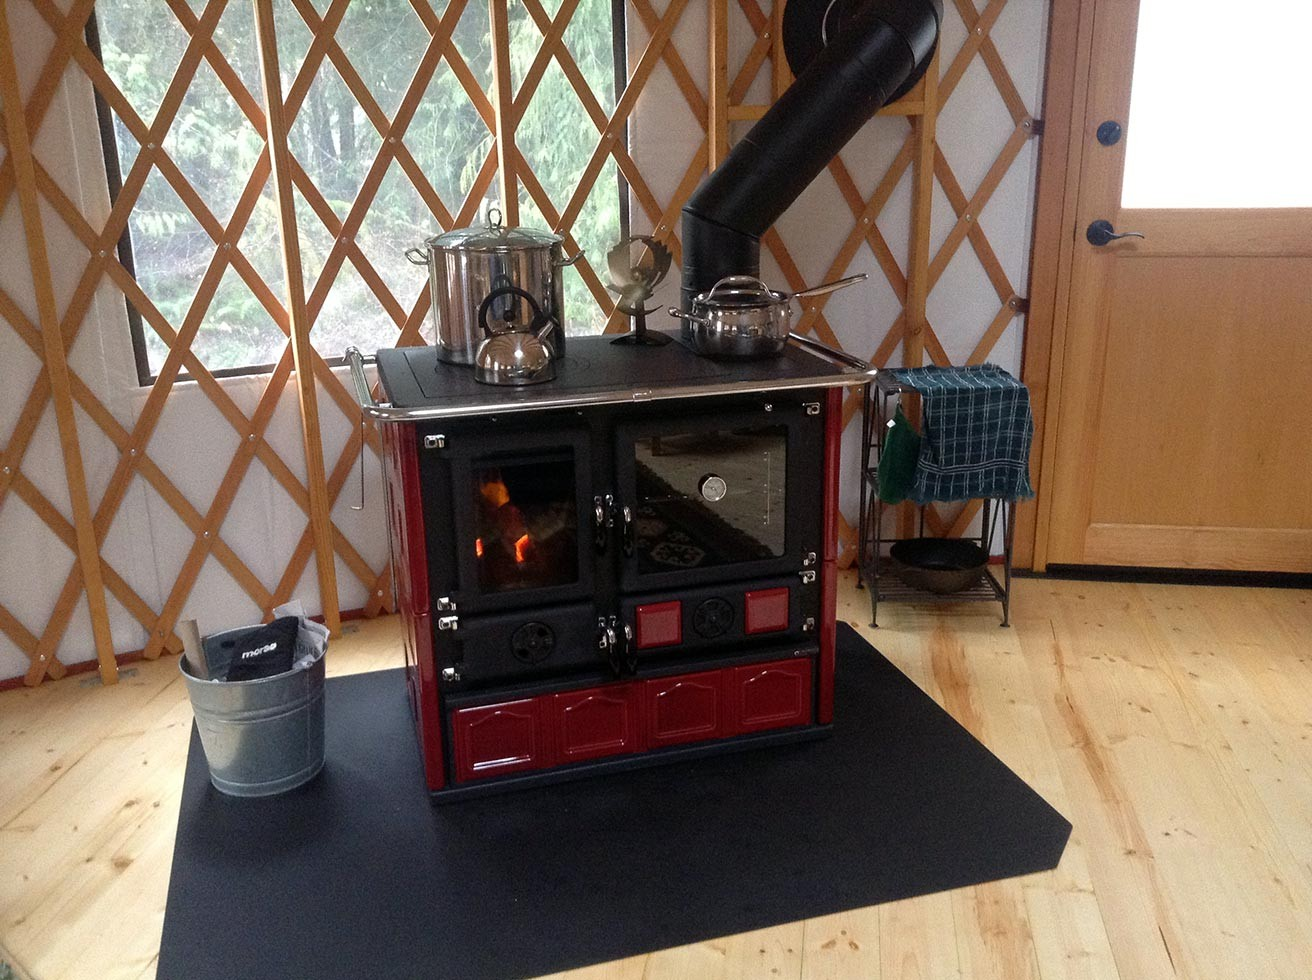 ... Wood burning cook stove in yurt ... - Wood Cook Stove La Nordica